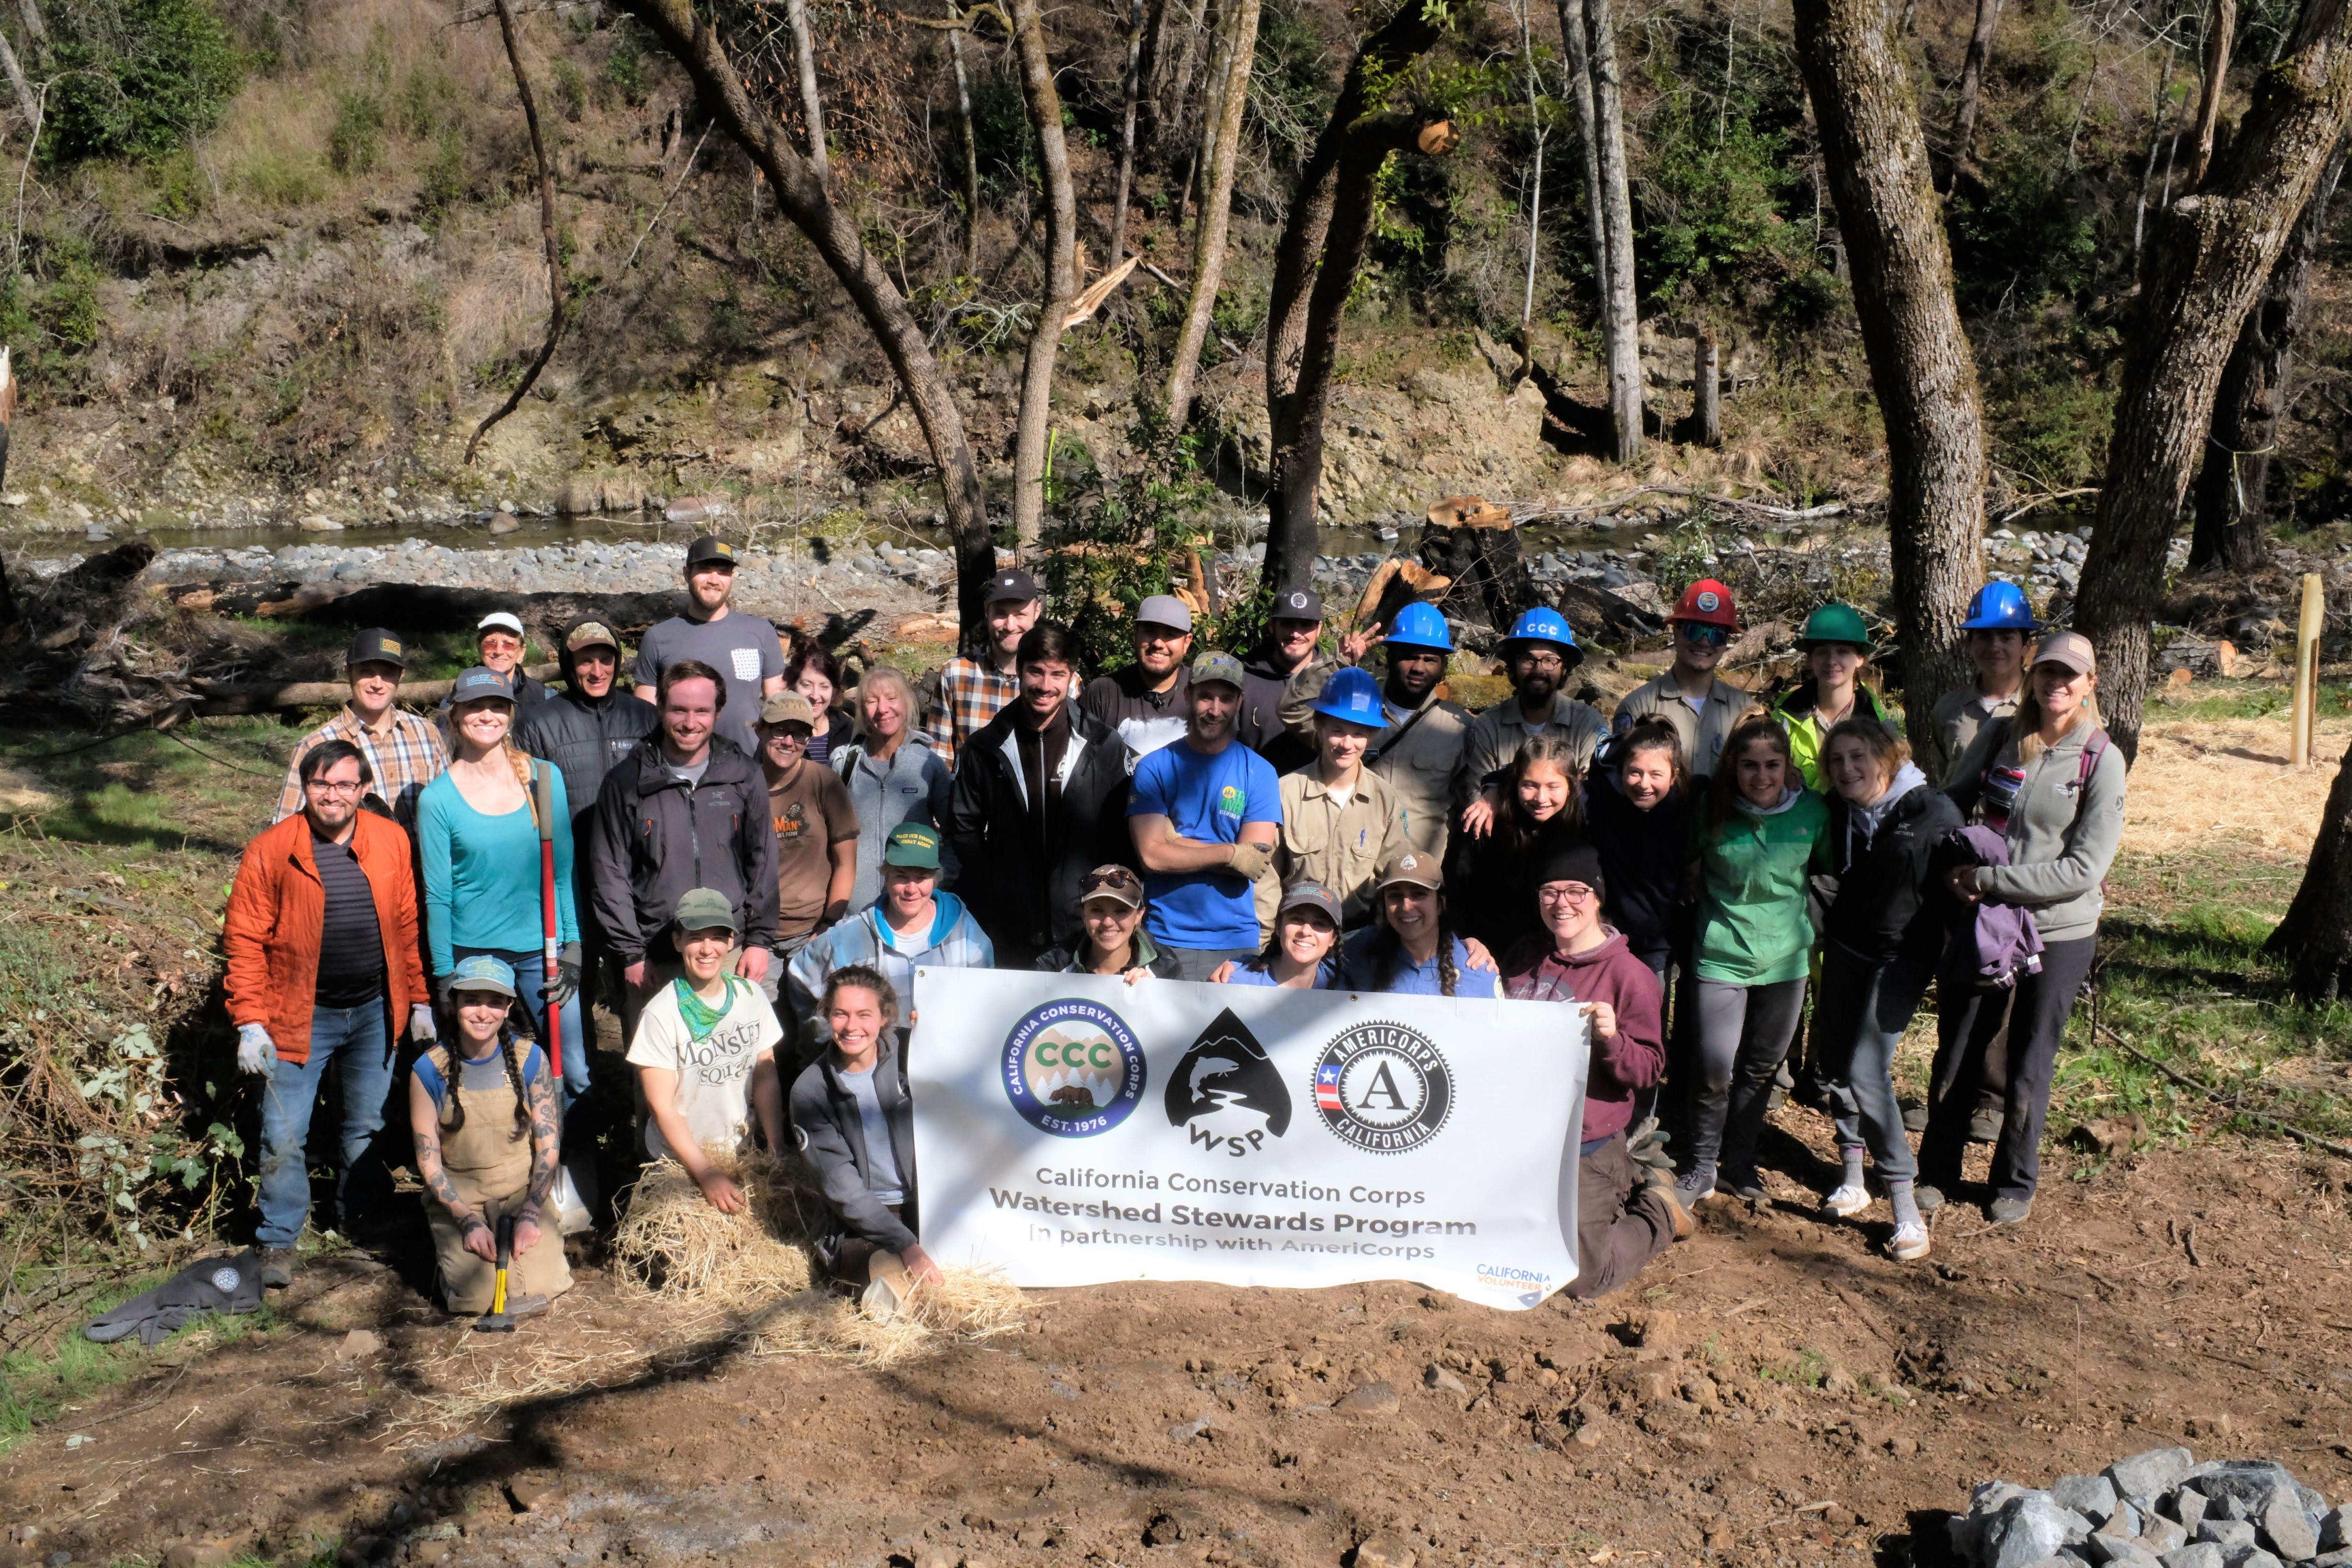 Group Photo - California Conservation Corps Watershed Stewards Program